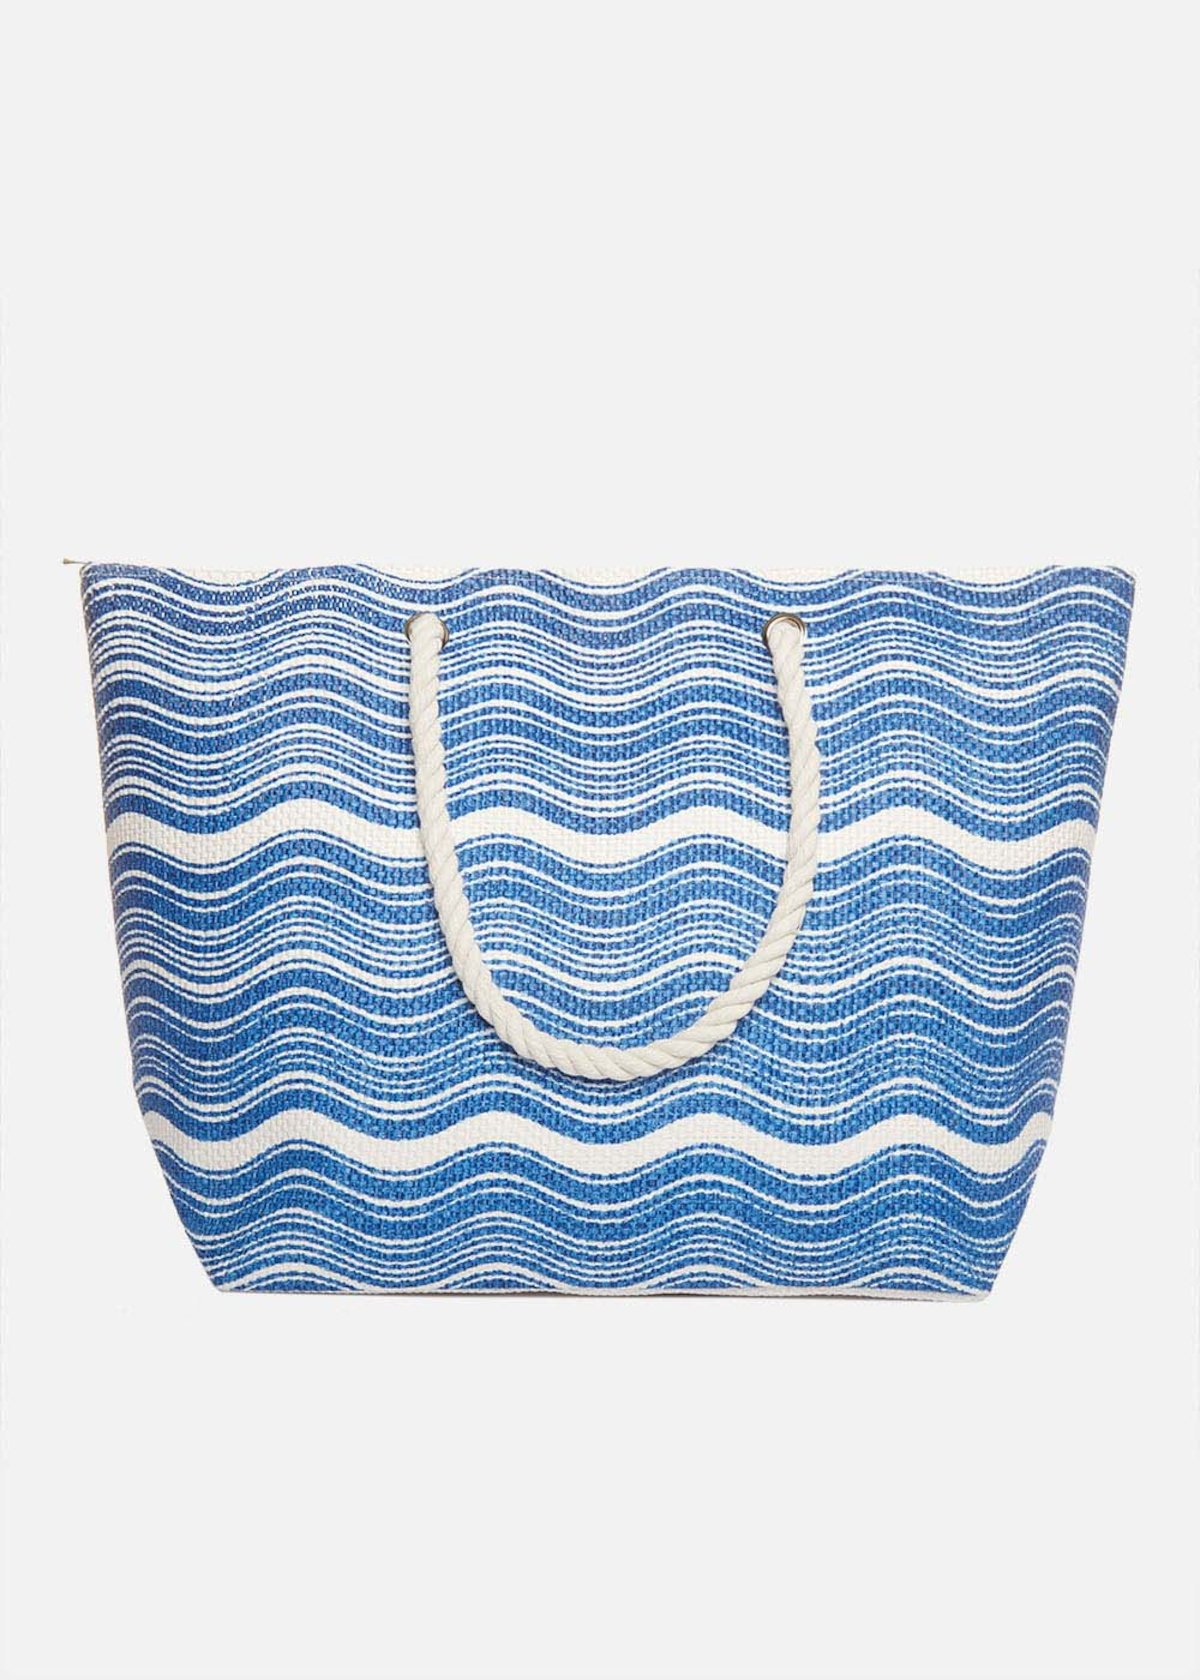 Shopping bag Brassa waves printed con manici in corda